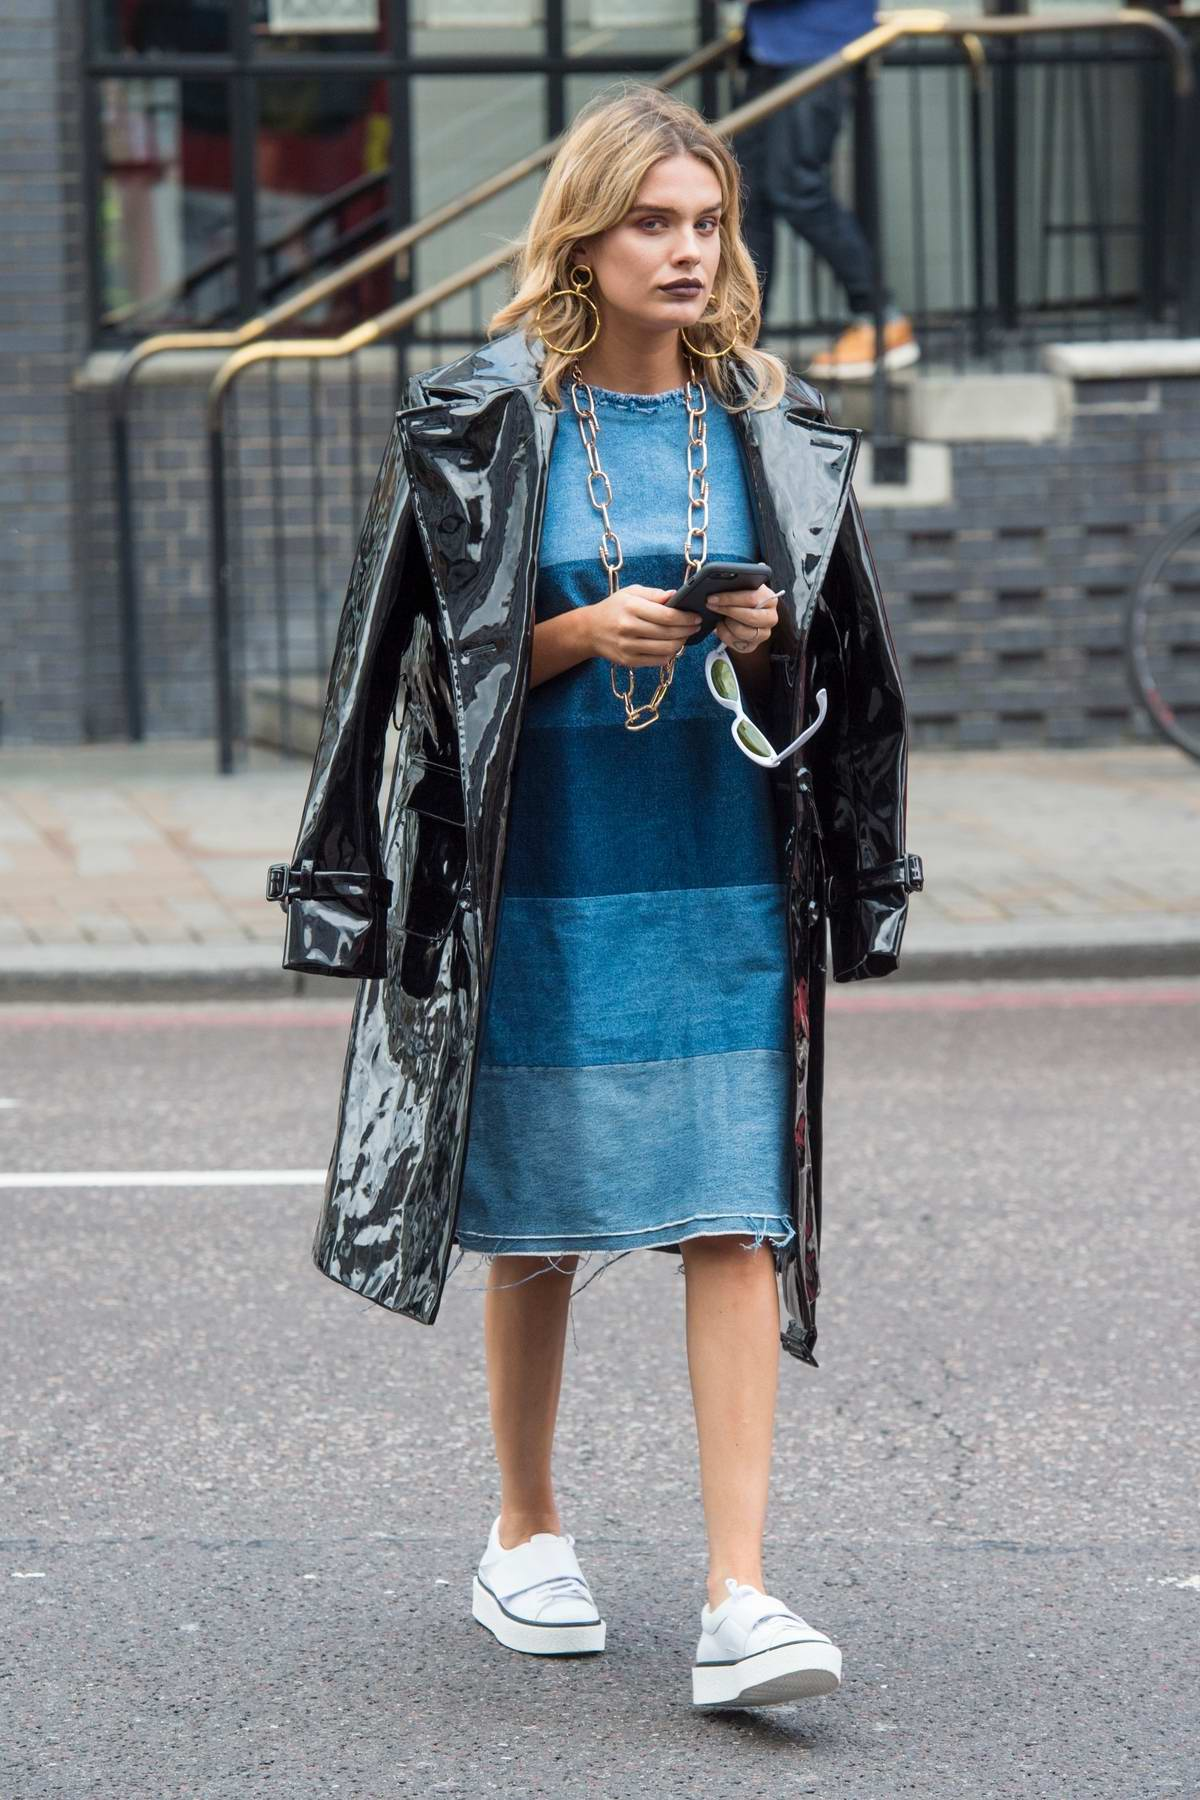 Chloe Lloyd looking trendy out in East London, UK